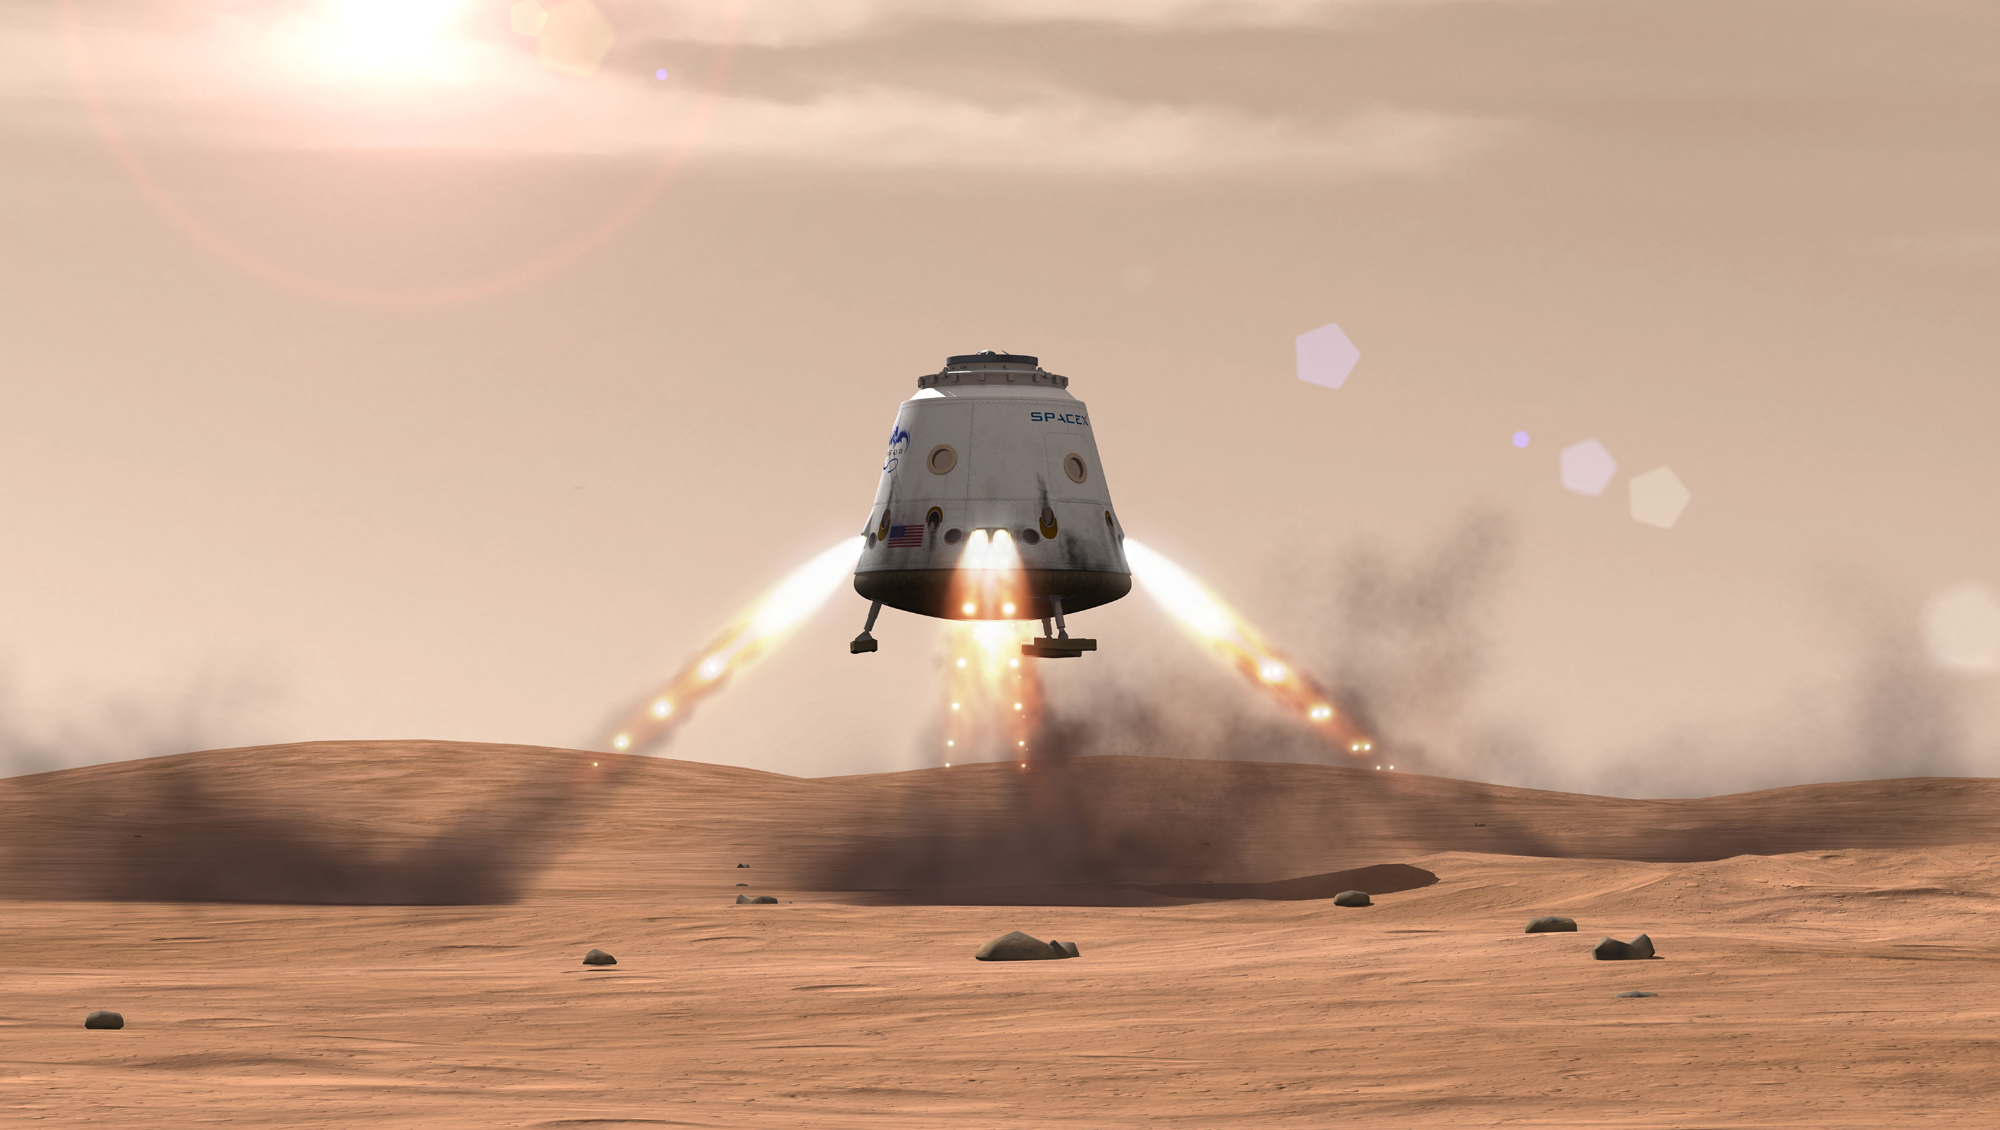 SpaceX's Elon Musk to Reveal Mars Colonization Ideas This Year